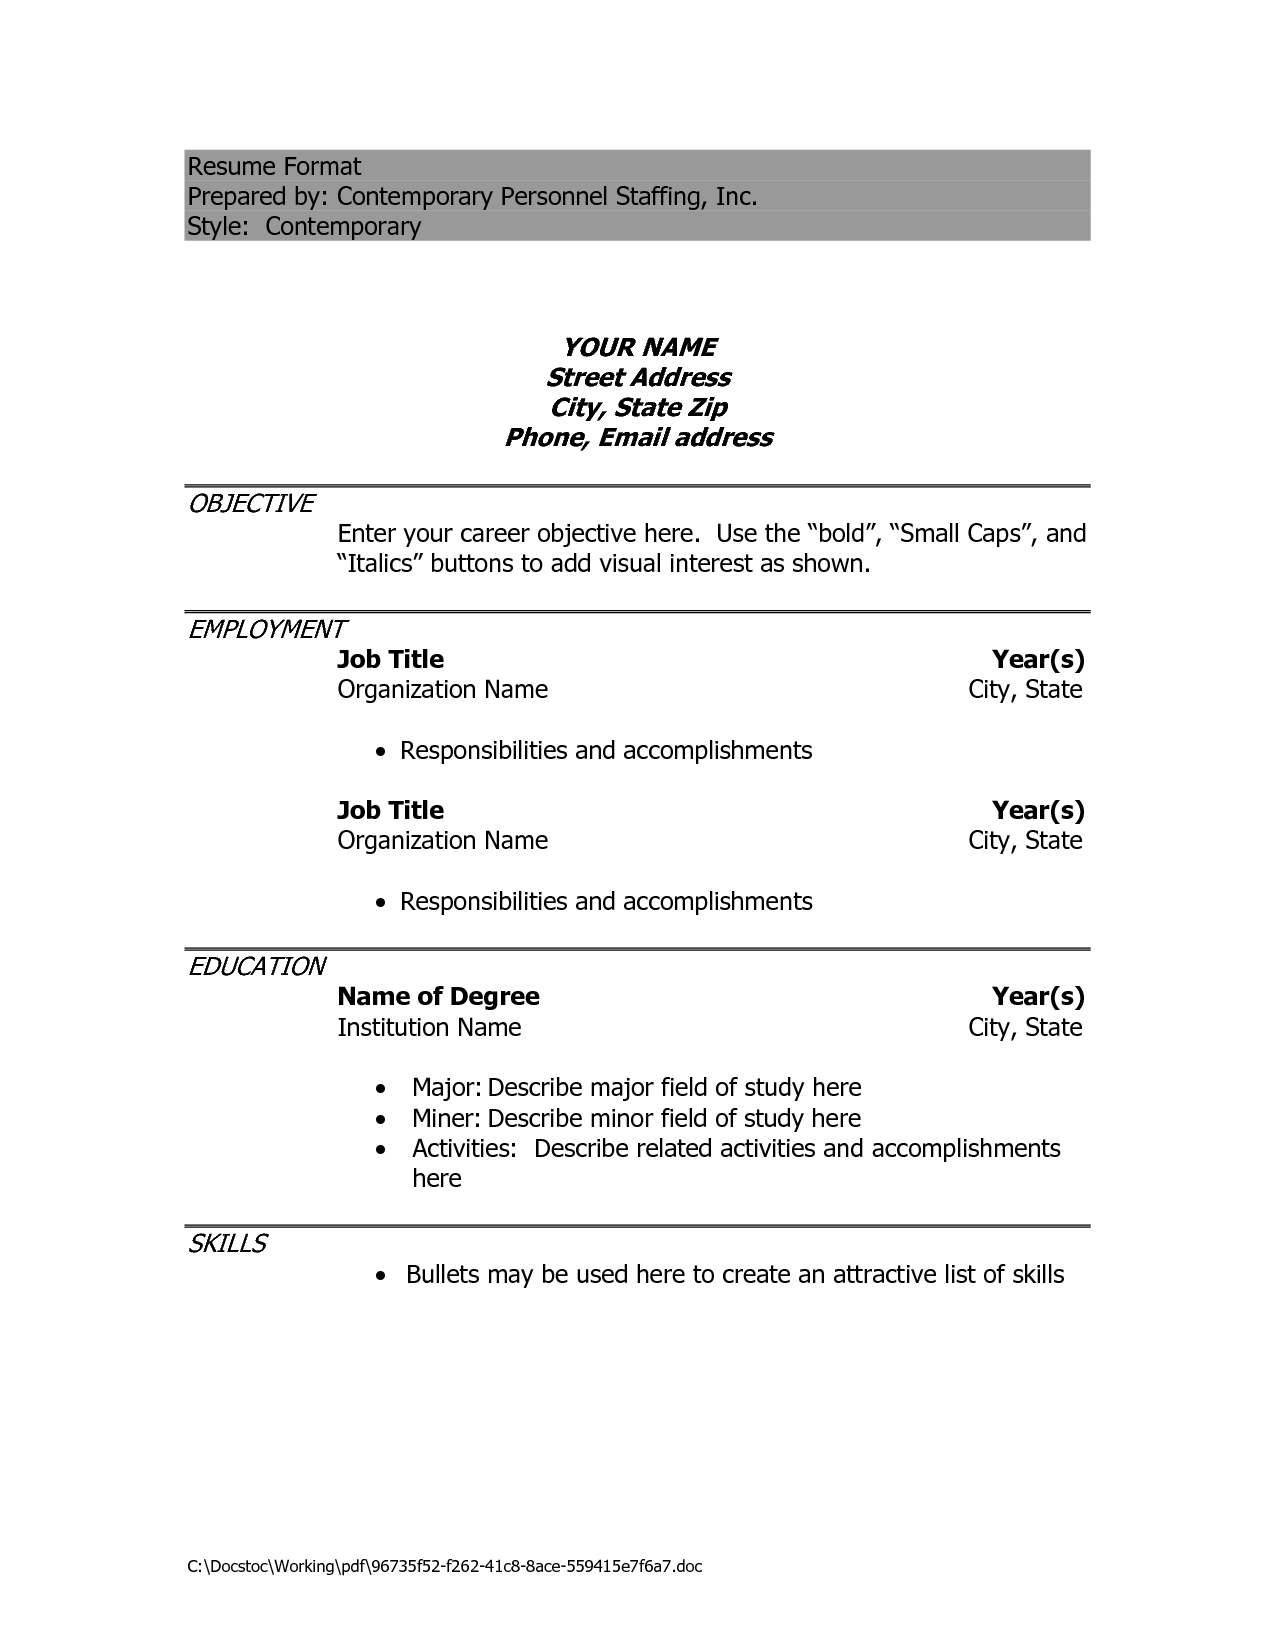 Career Builder Resume Template Resume Format For Teachers Doc File Resume Format For Teachers Doc